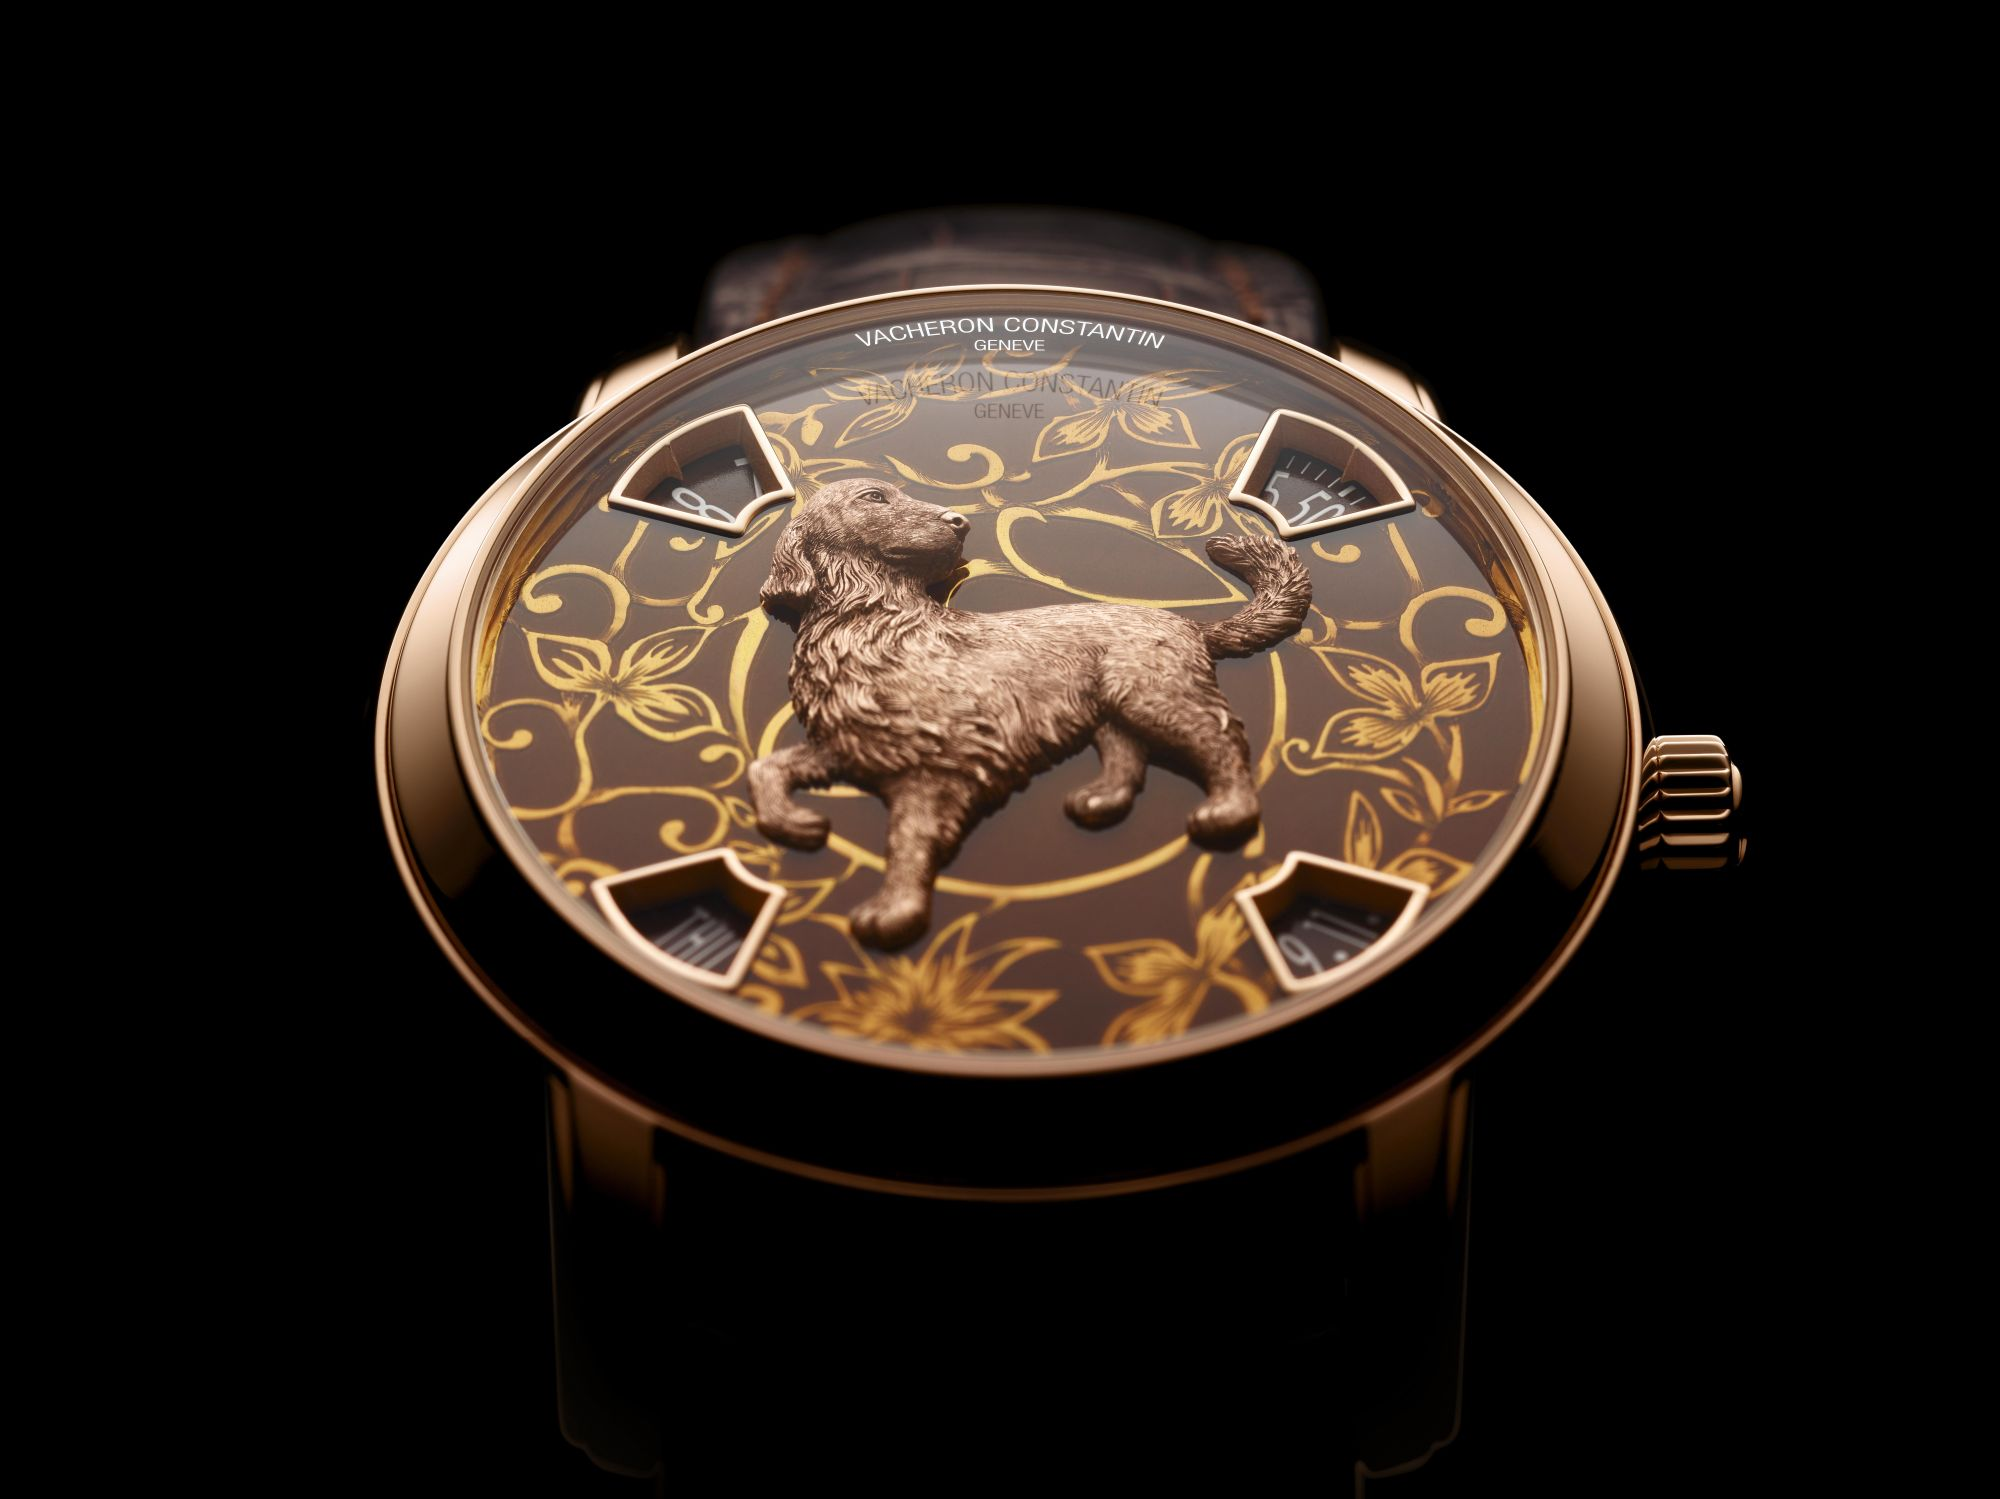 Vacheron Constantin Celebrates The Year Of The Dog